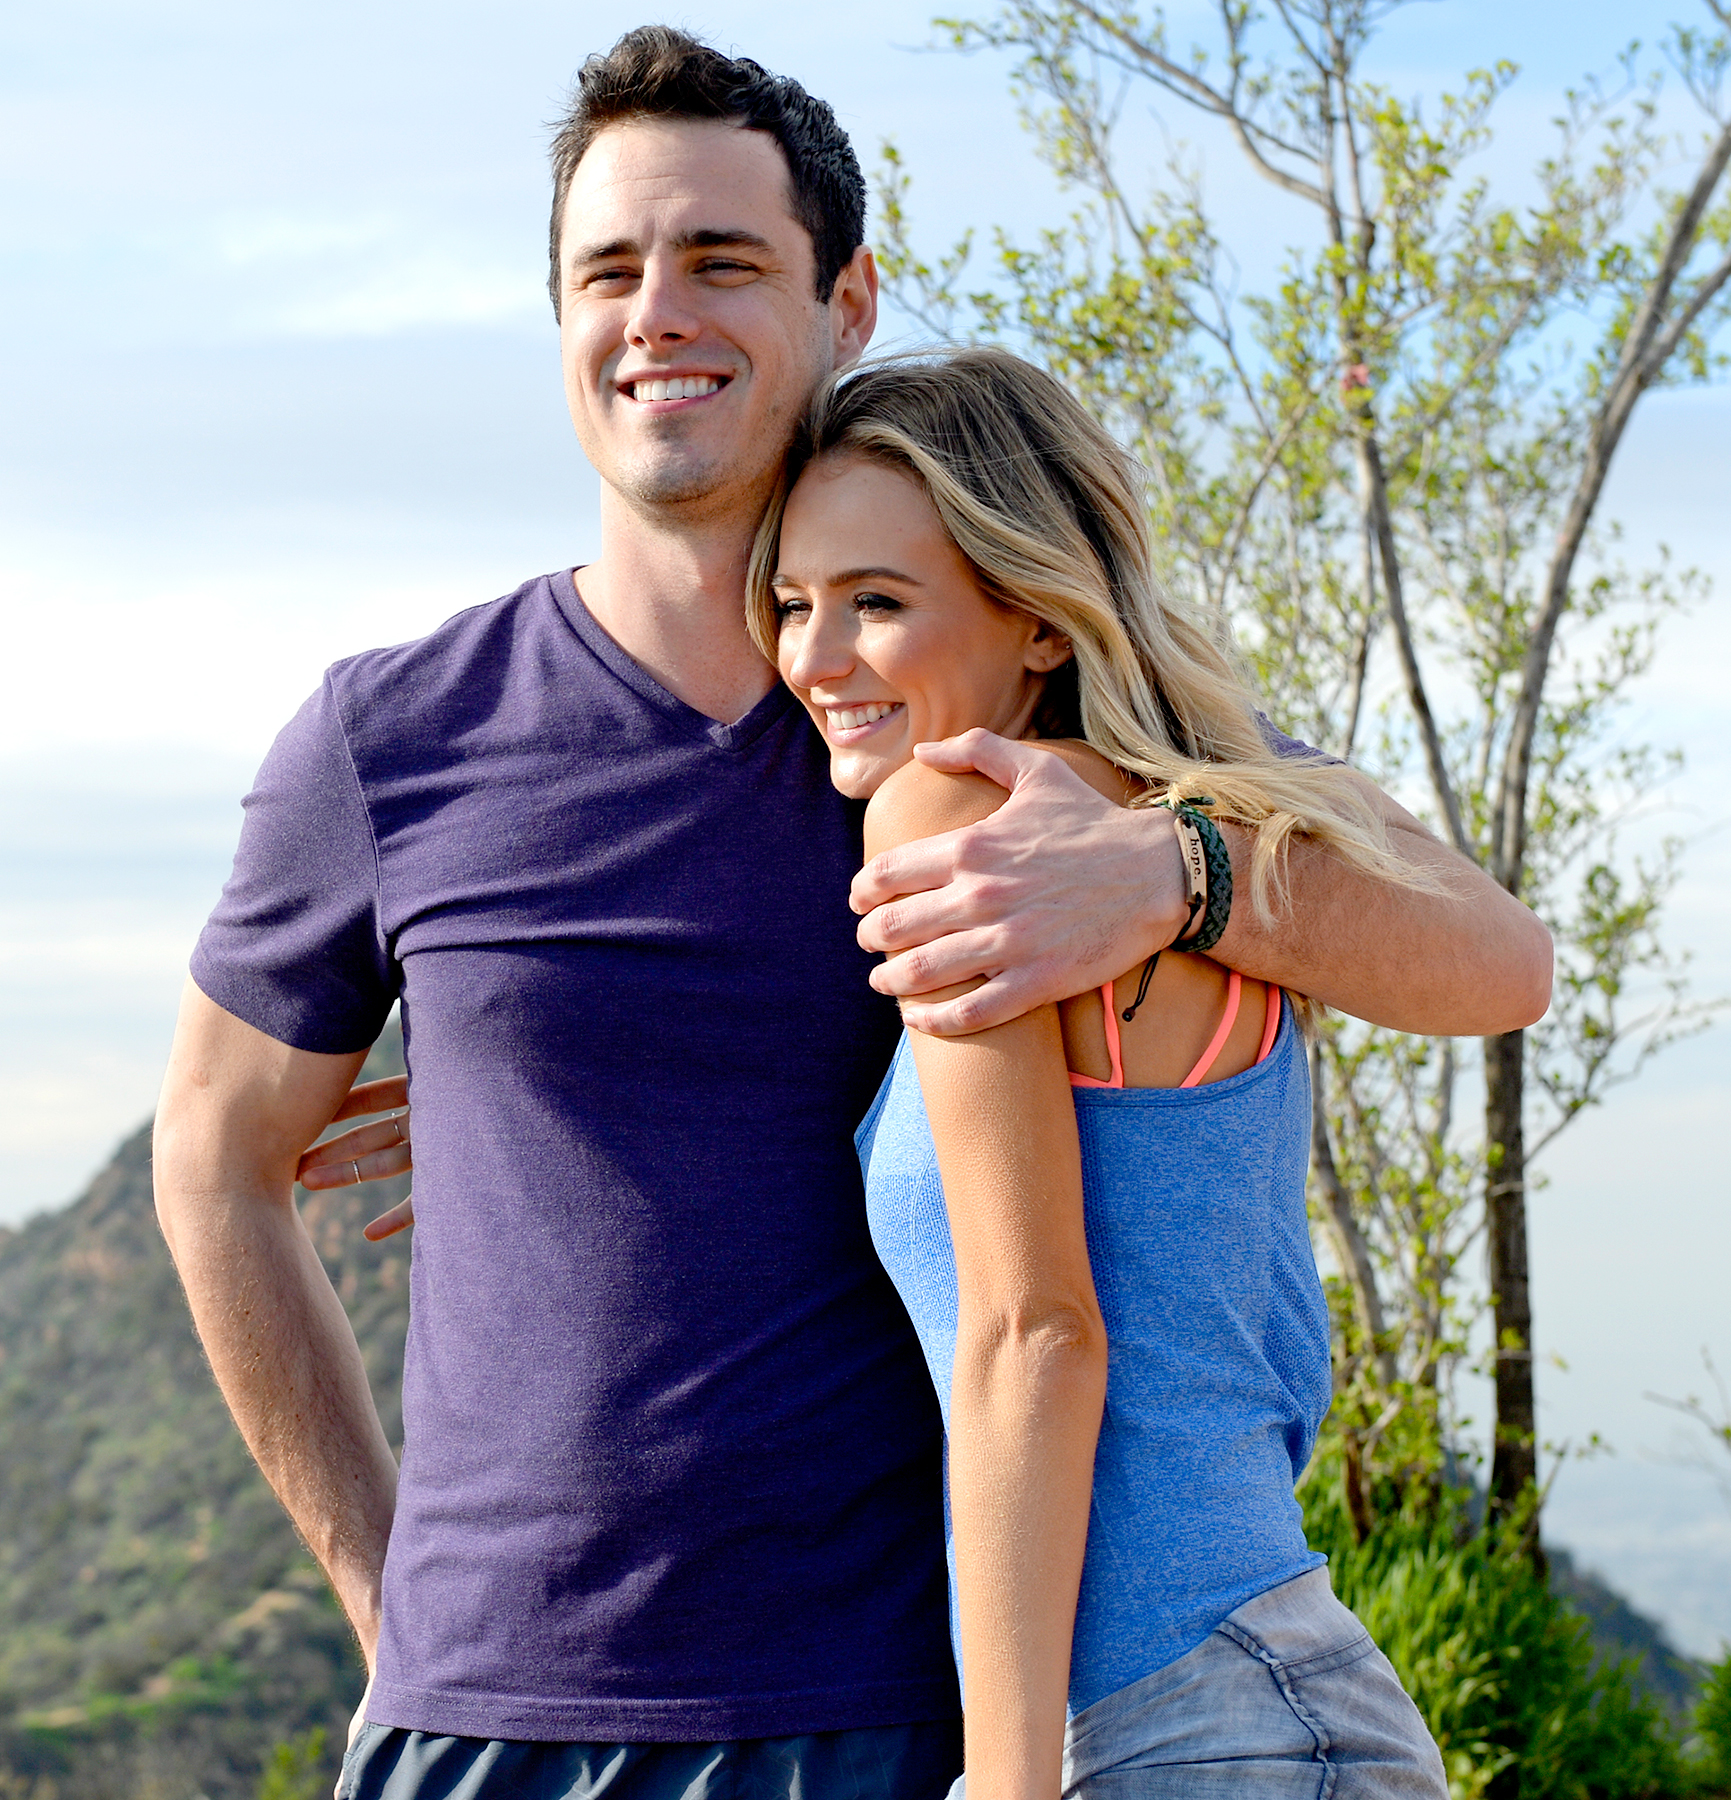 Ben higgins now